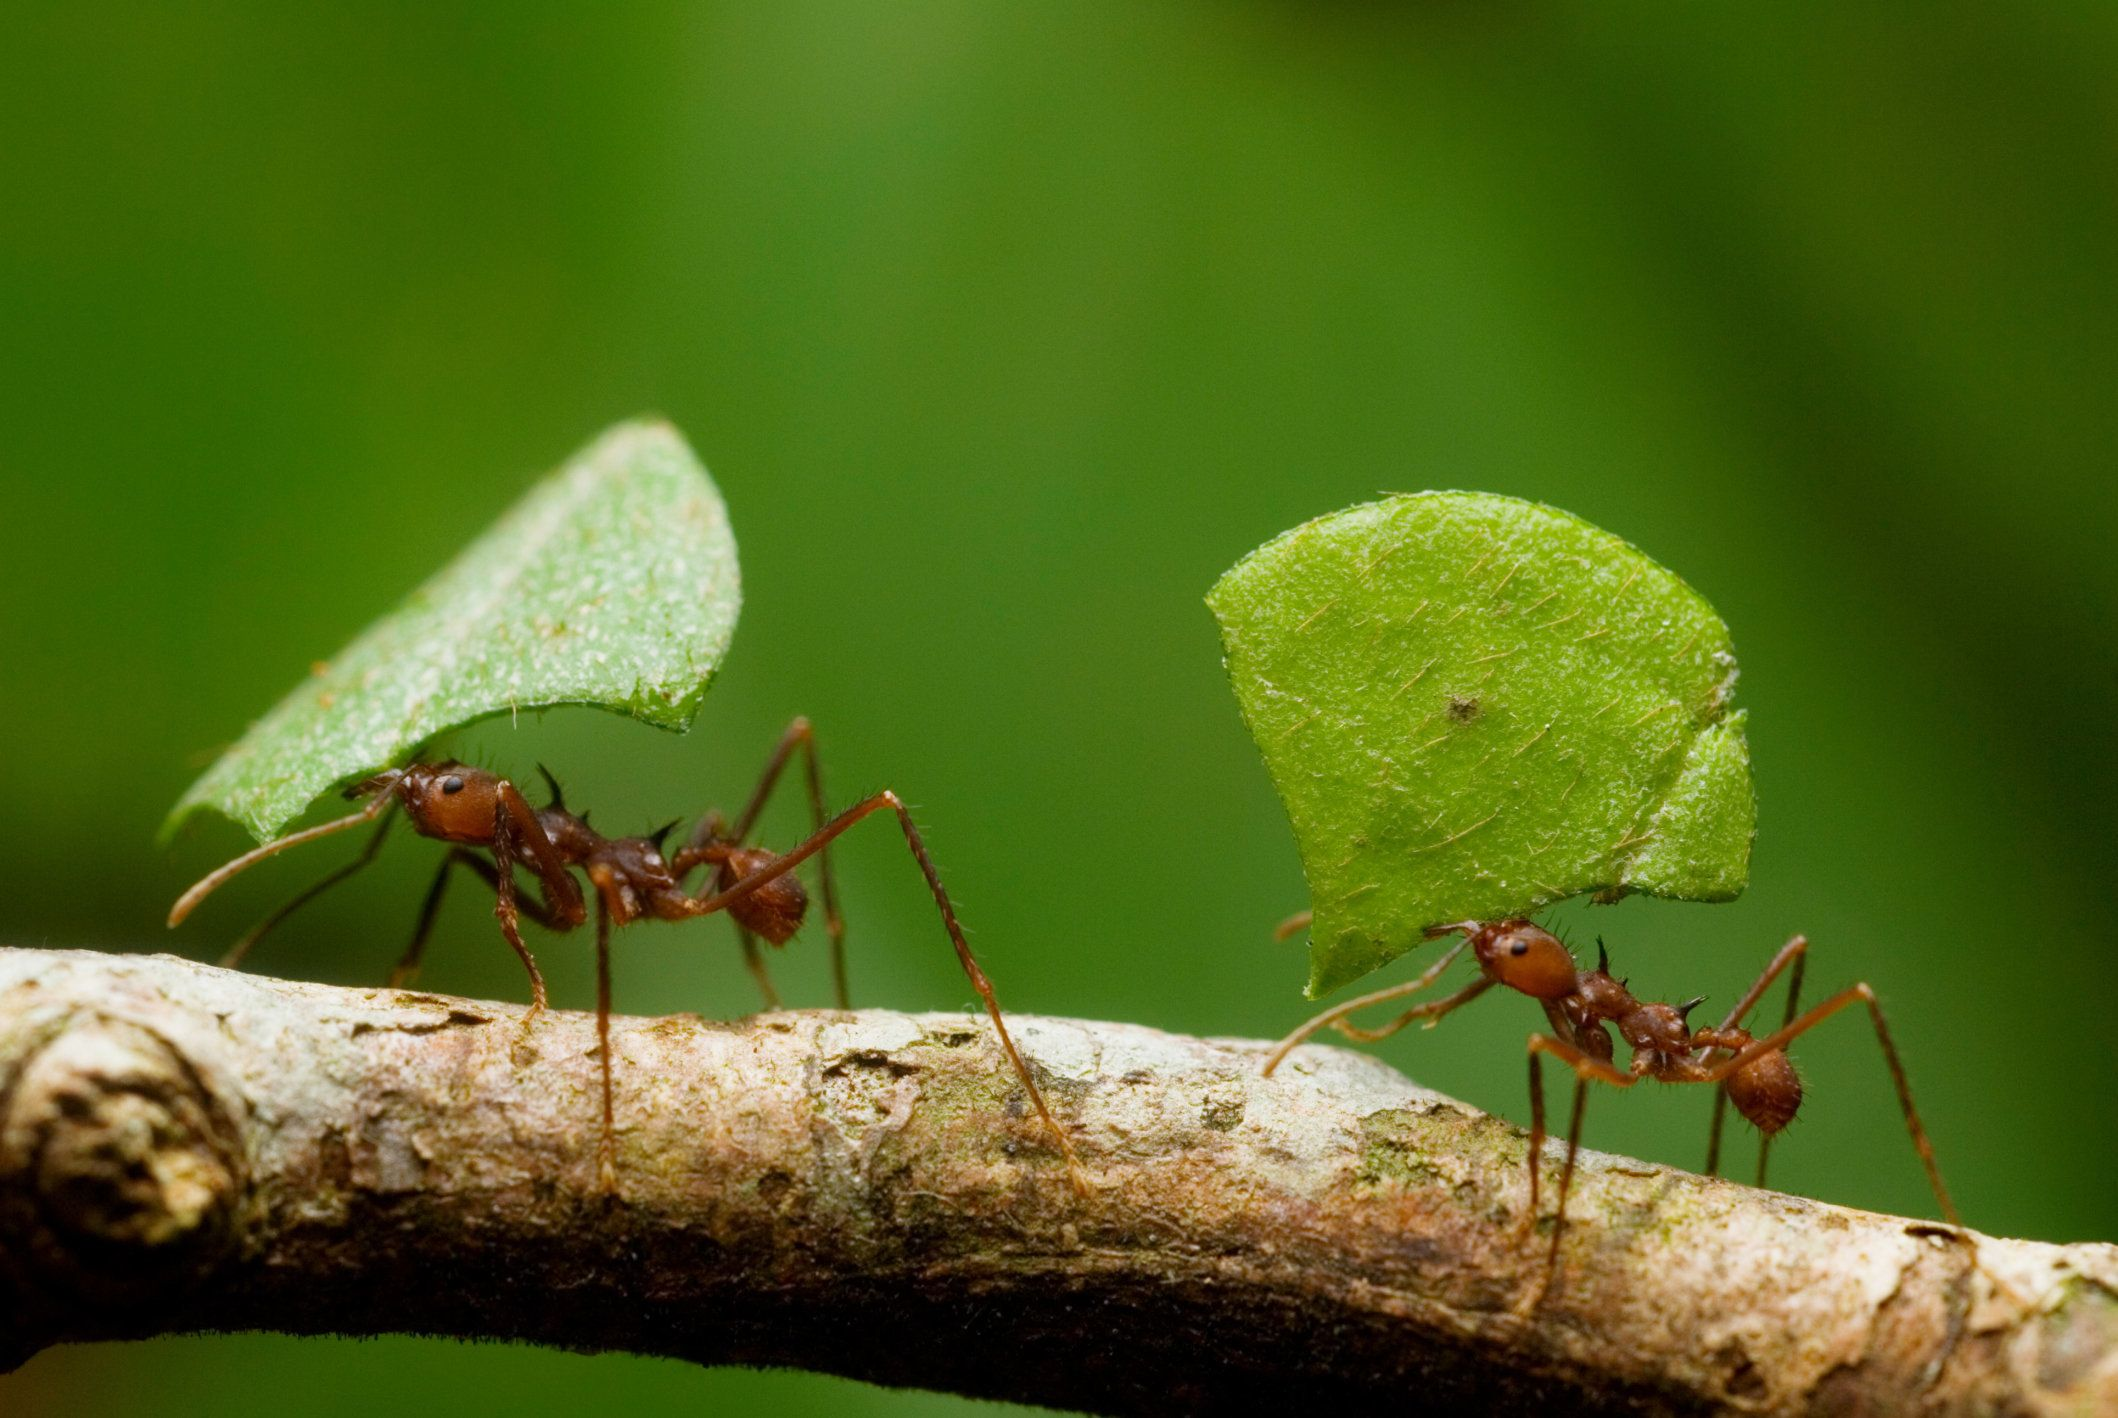 Leaf-cutter ants are principally found in the southwest of the U.S. and South and Central America.